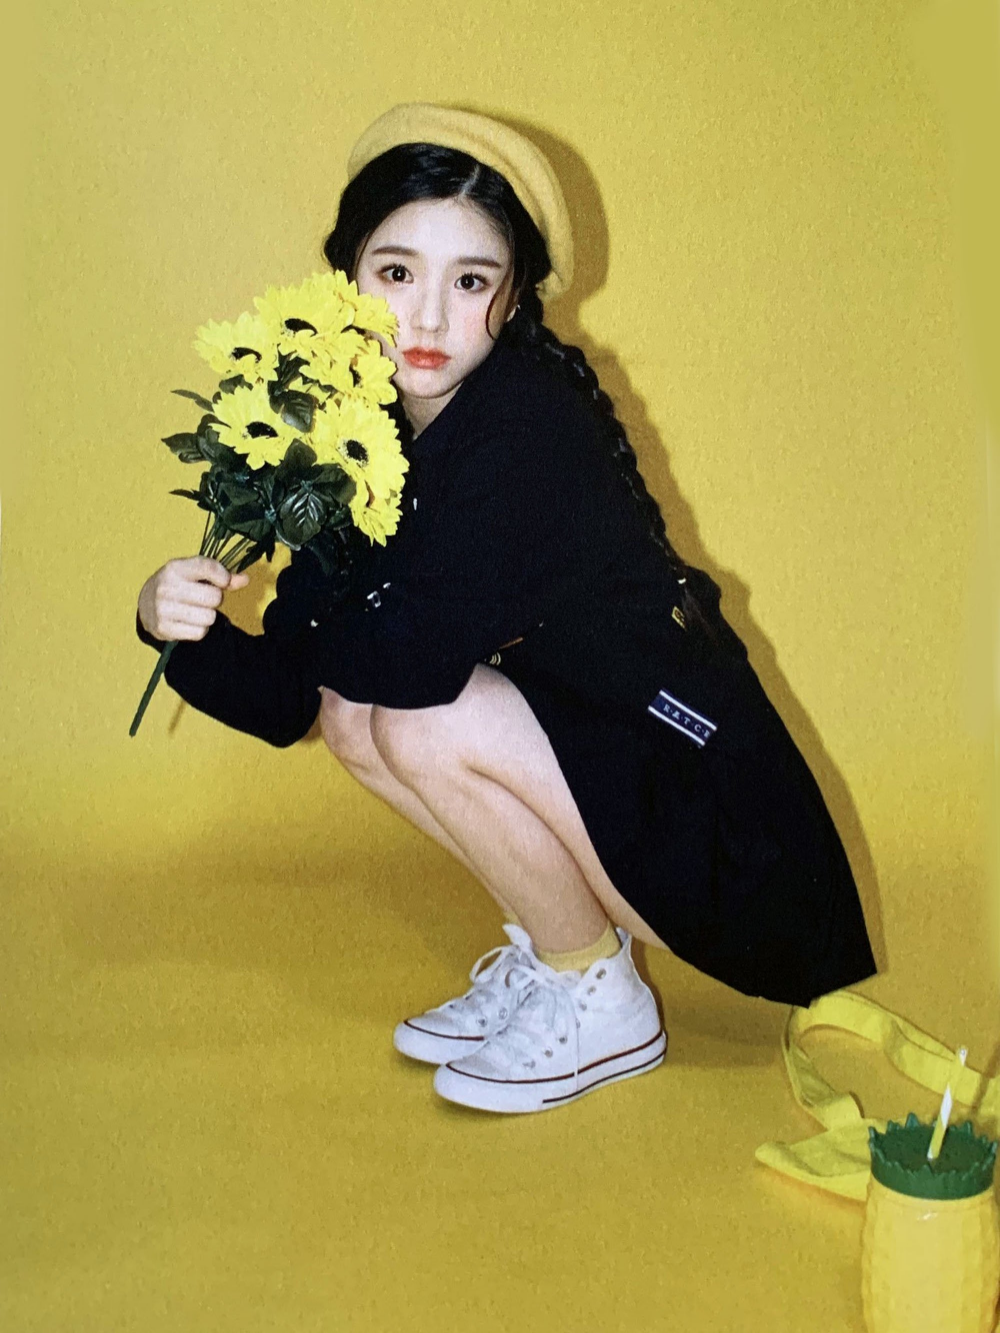 ⃝ on in 2020 (With images) Kpop girls, Girl photos